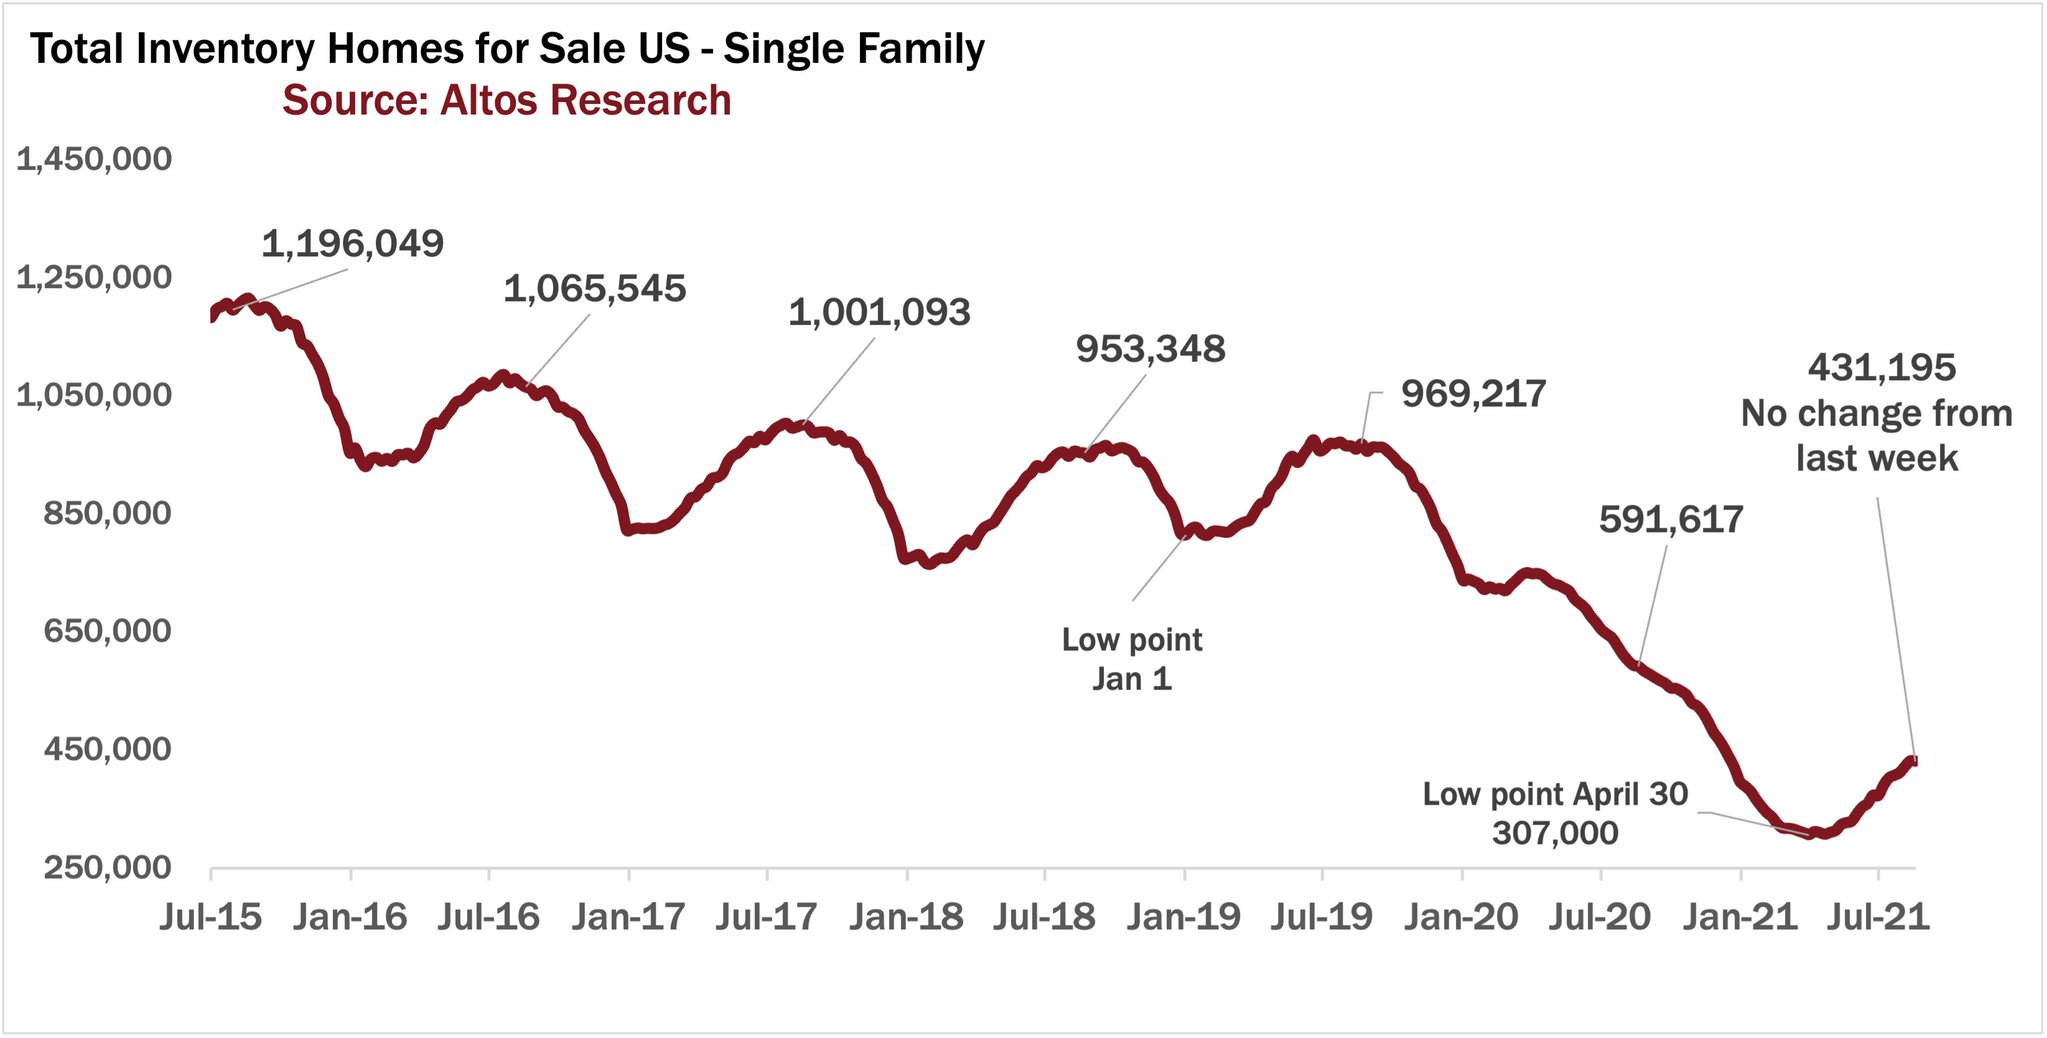 Housing inventory for sale in the United States - Single Family homes, beginning to increase in July 2021